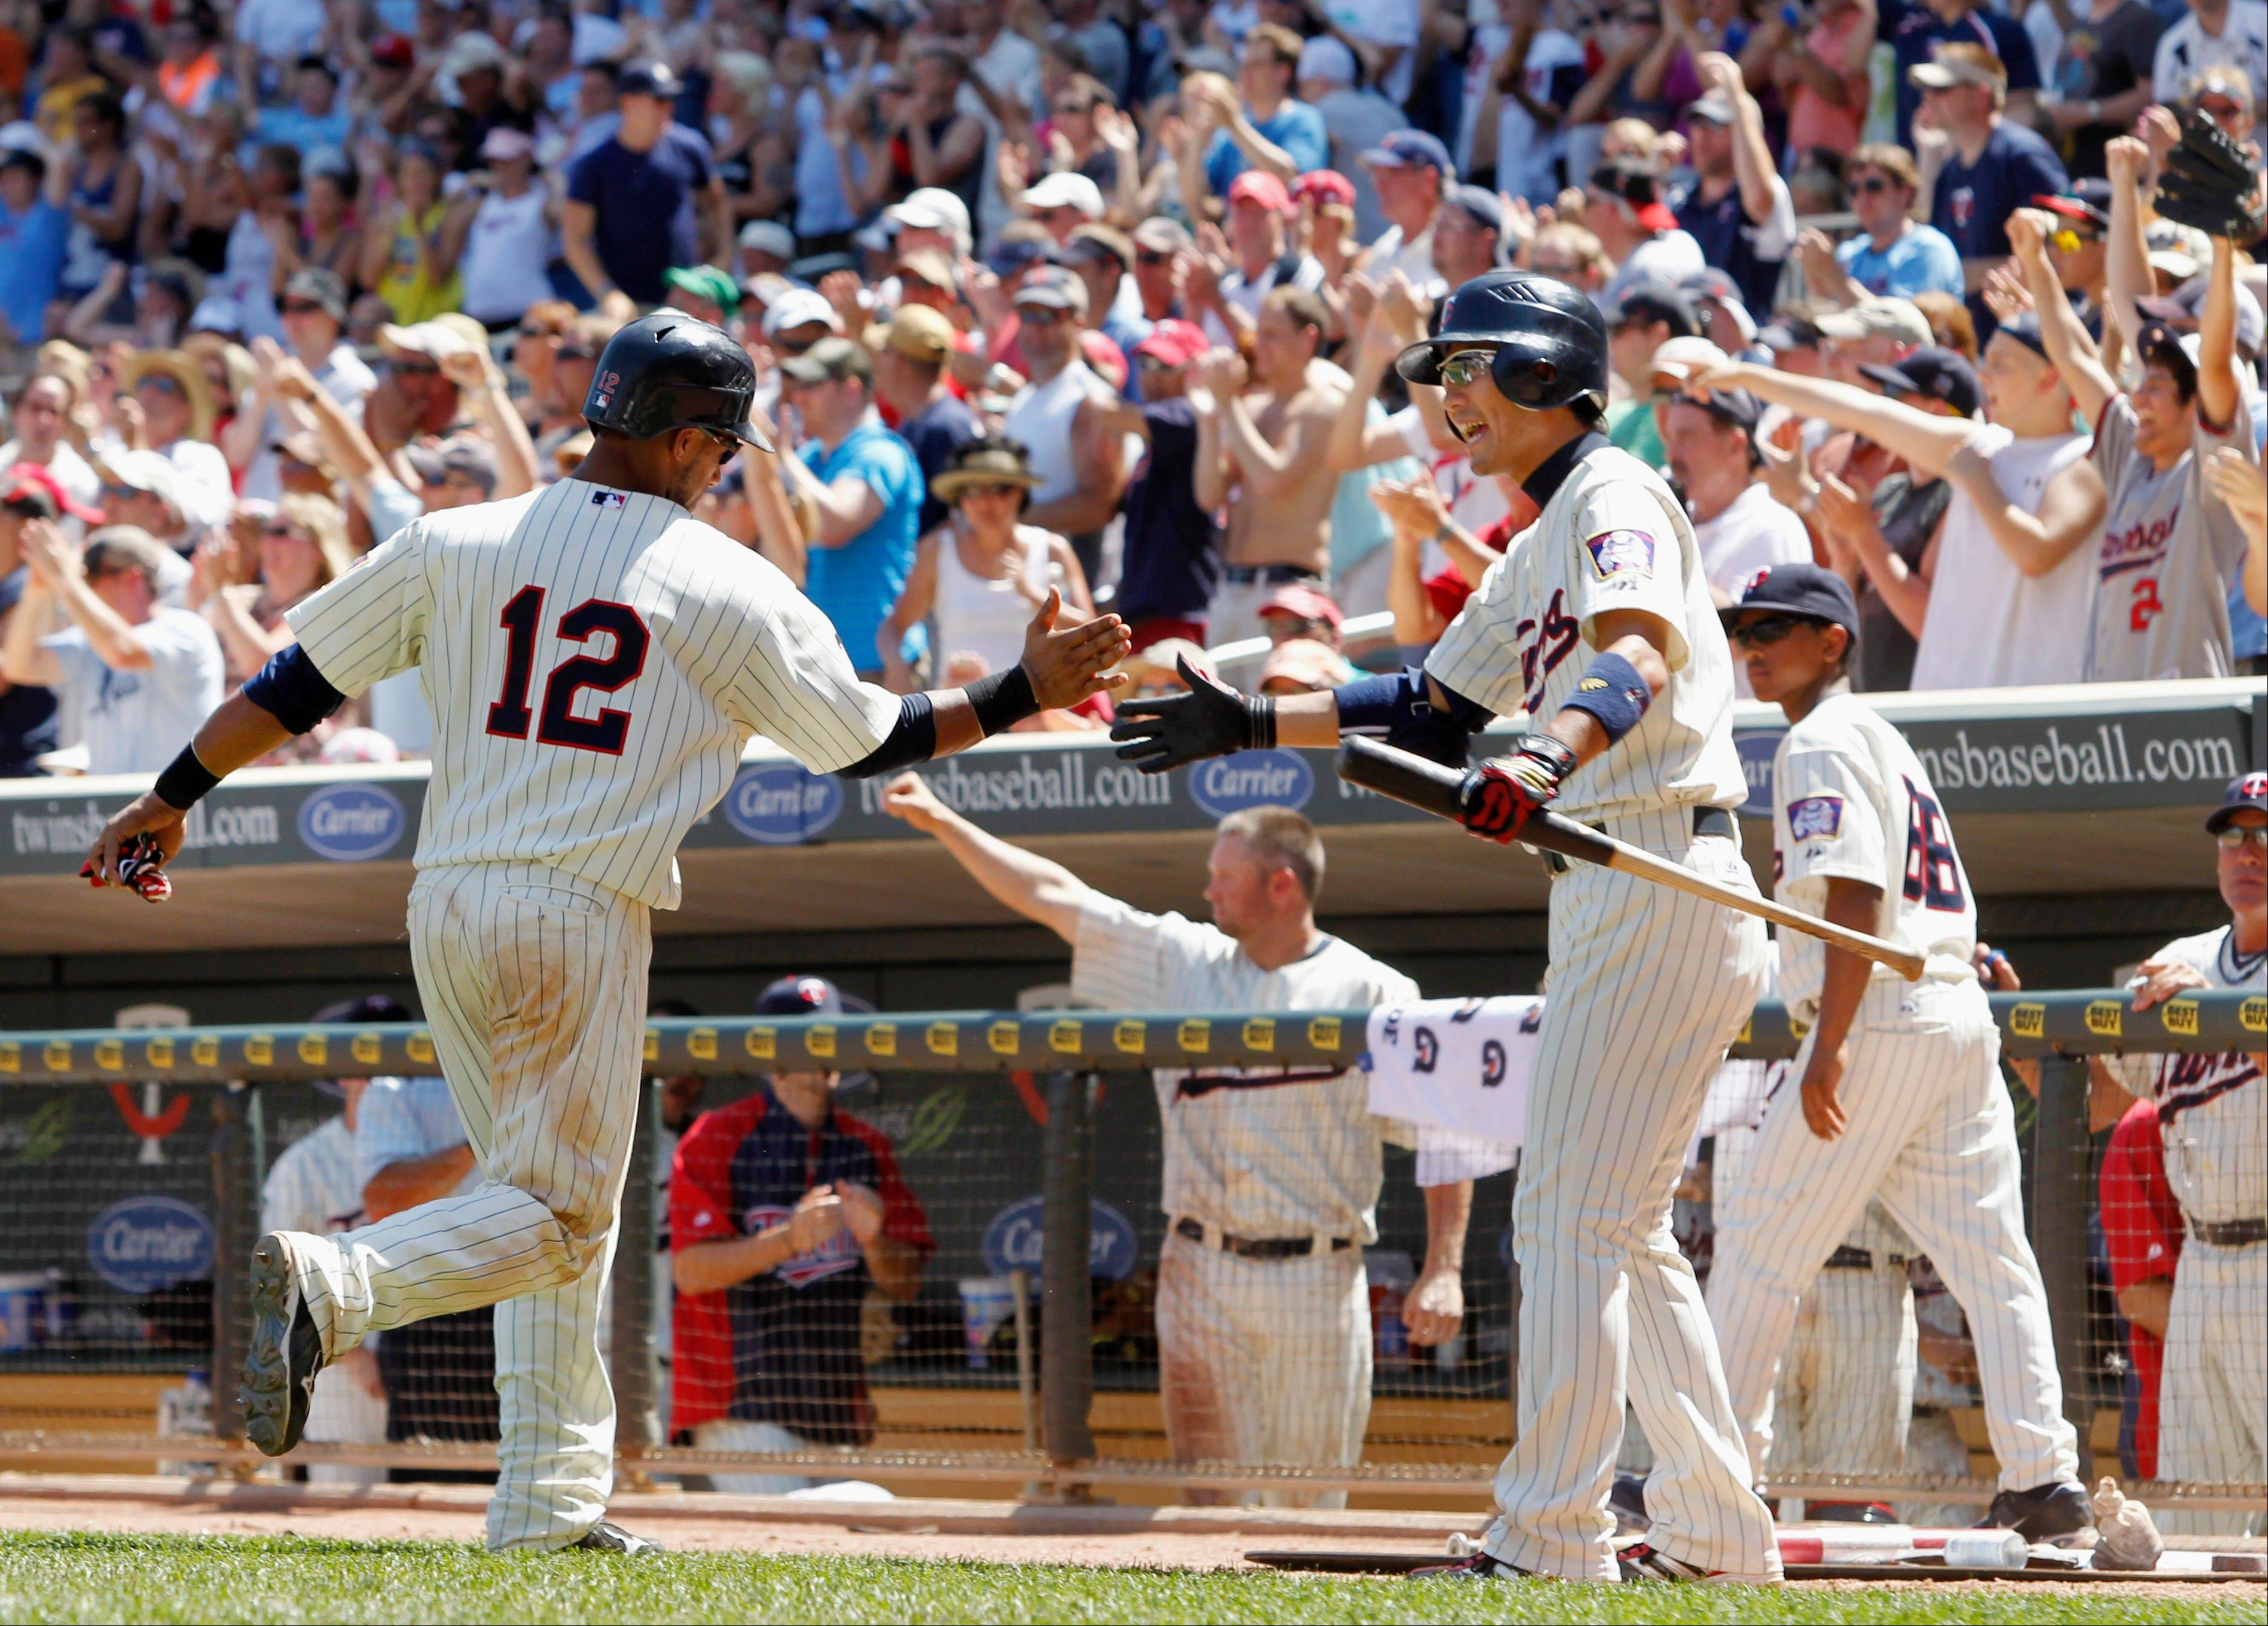 The Minnesota Twins� Alexi Casilla, left, is congratulated by teammate Tsuyoshi Nishioka after scoring the go-ahead run on Danny Valencia�s single to take the lead against the Cleveland Indians during the eighth inning on Wednesday in Minneapolis. The Twins defeated the Indians 7-5.